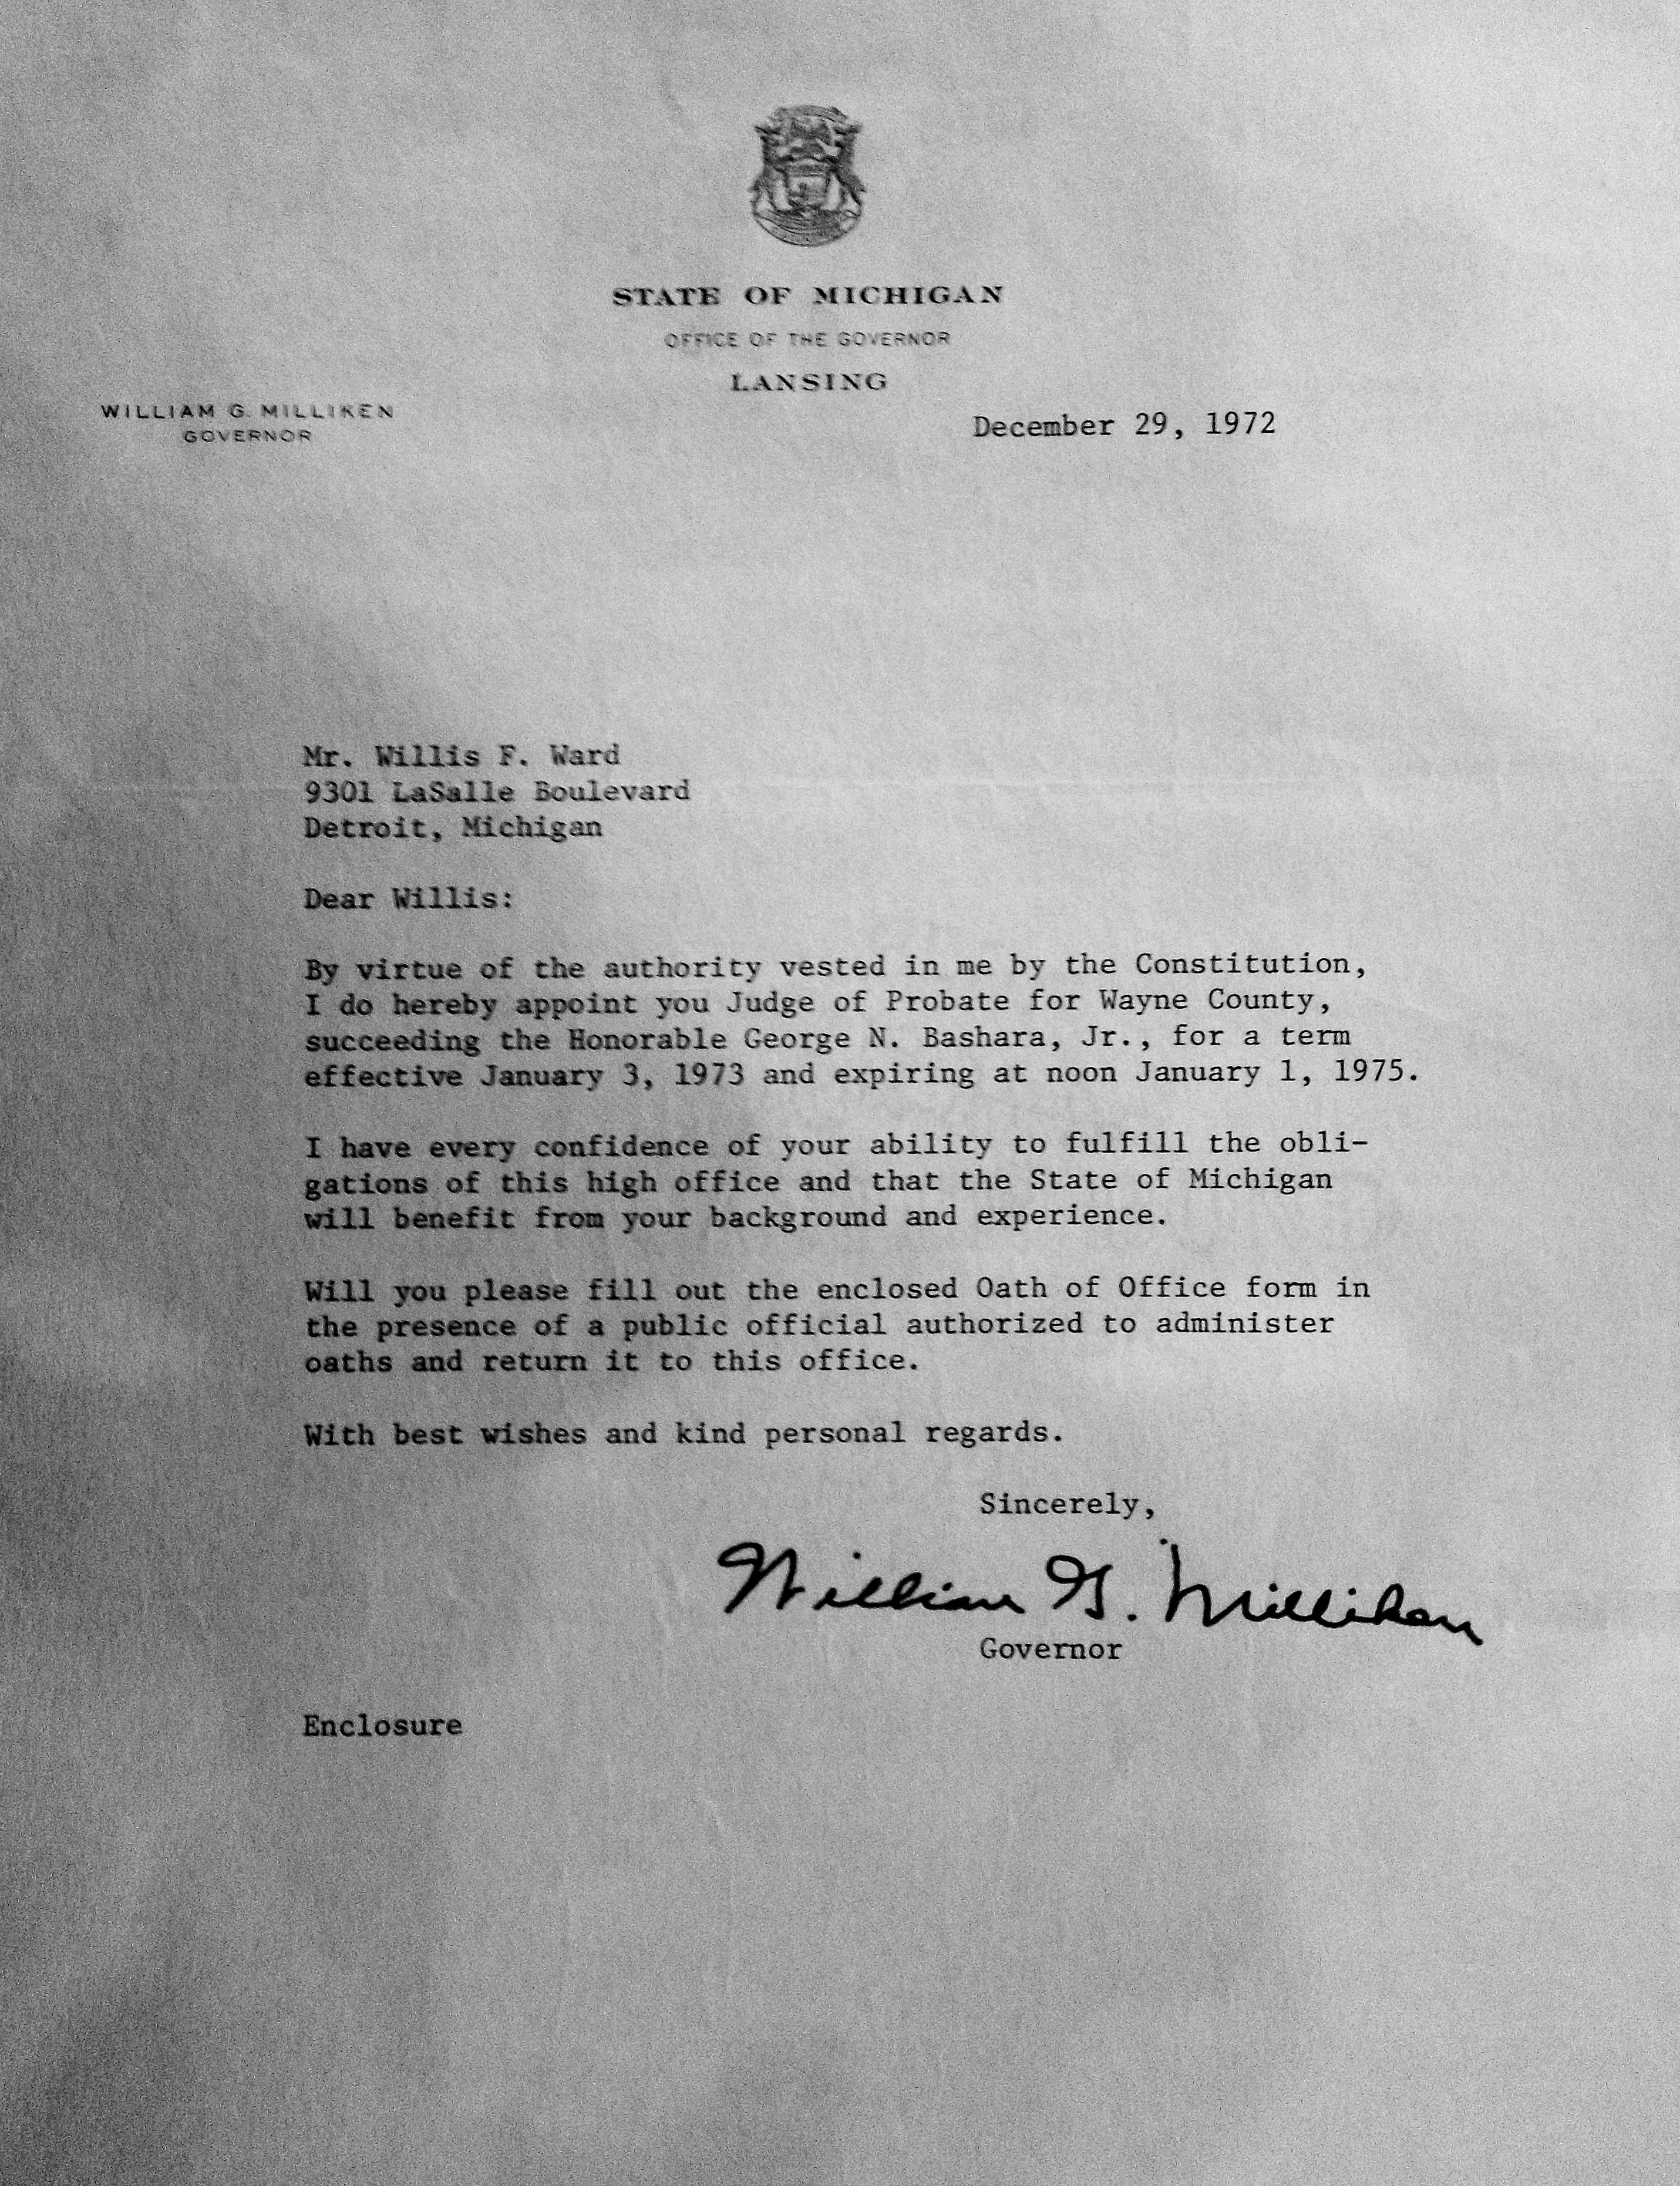 Georgia Tech Recommendation Letter Lovely Presidential Myth the Real Story Of Gerald ford Willis